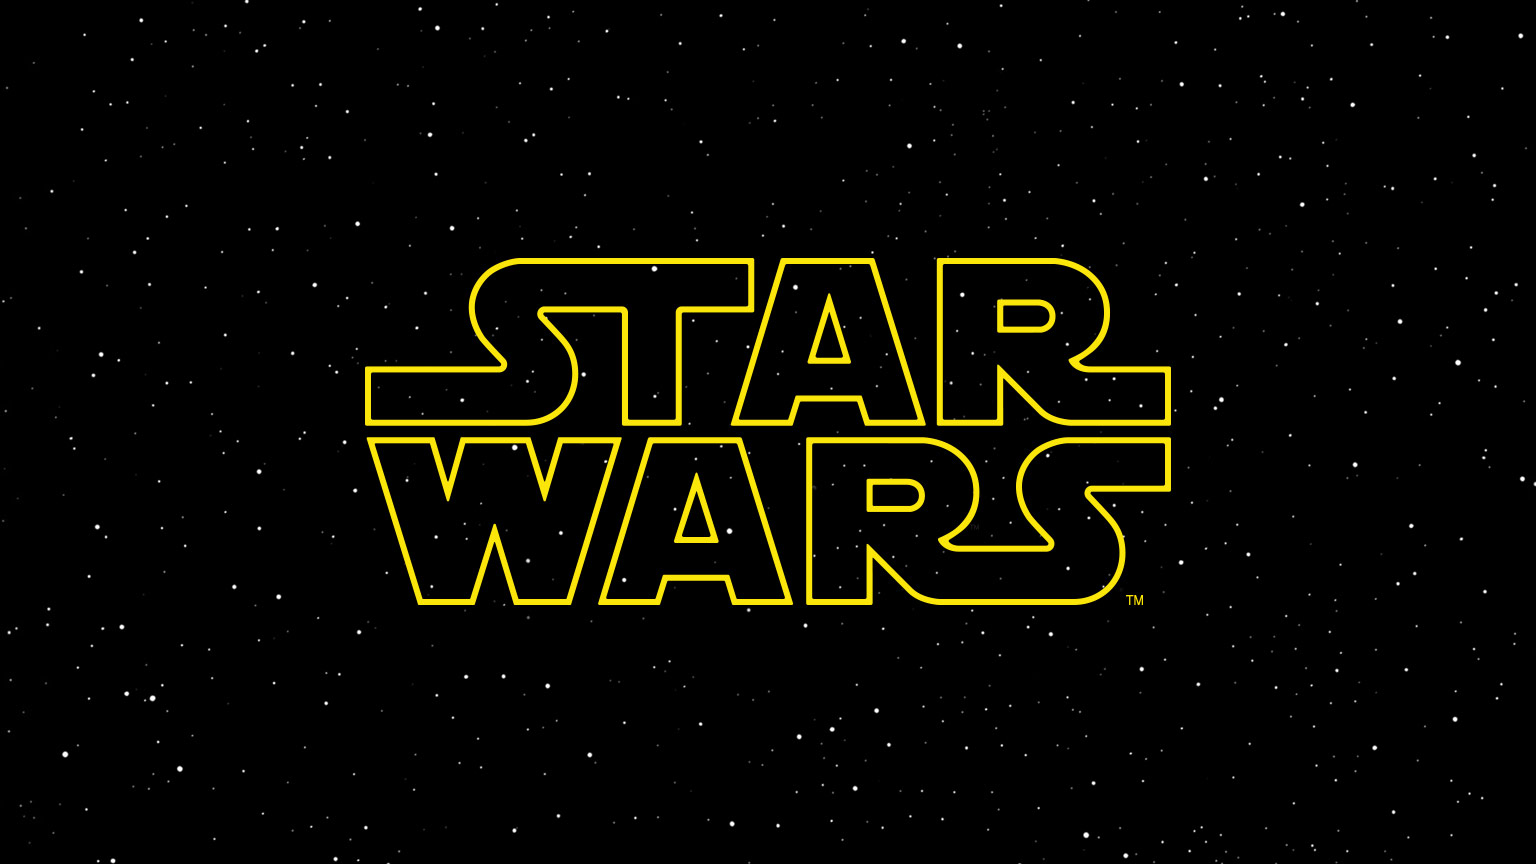 Game of Thrones is creators taking over the Next Star Wars movie!